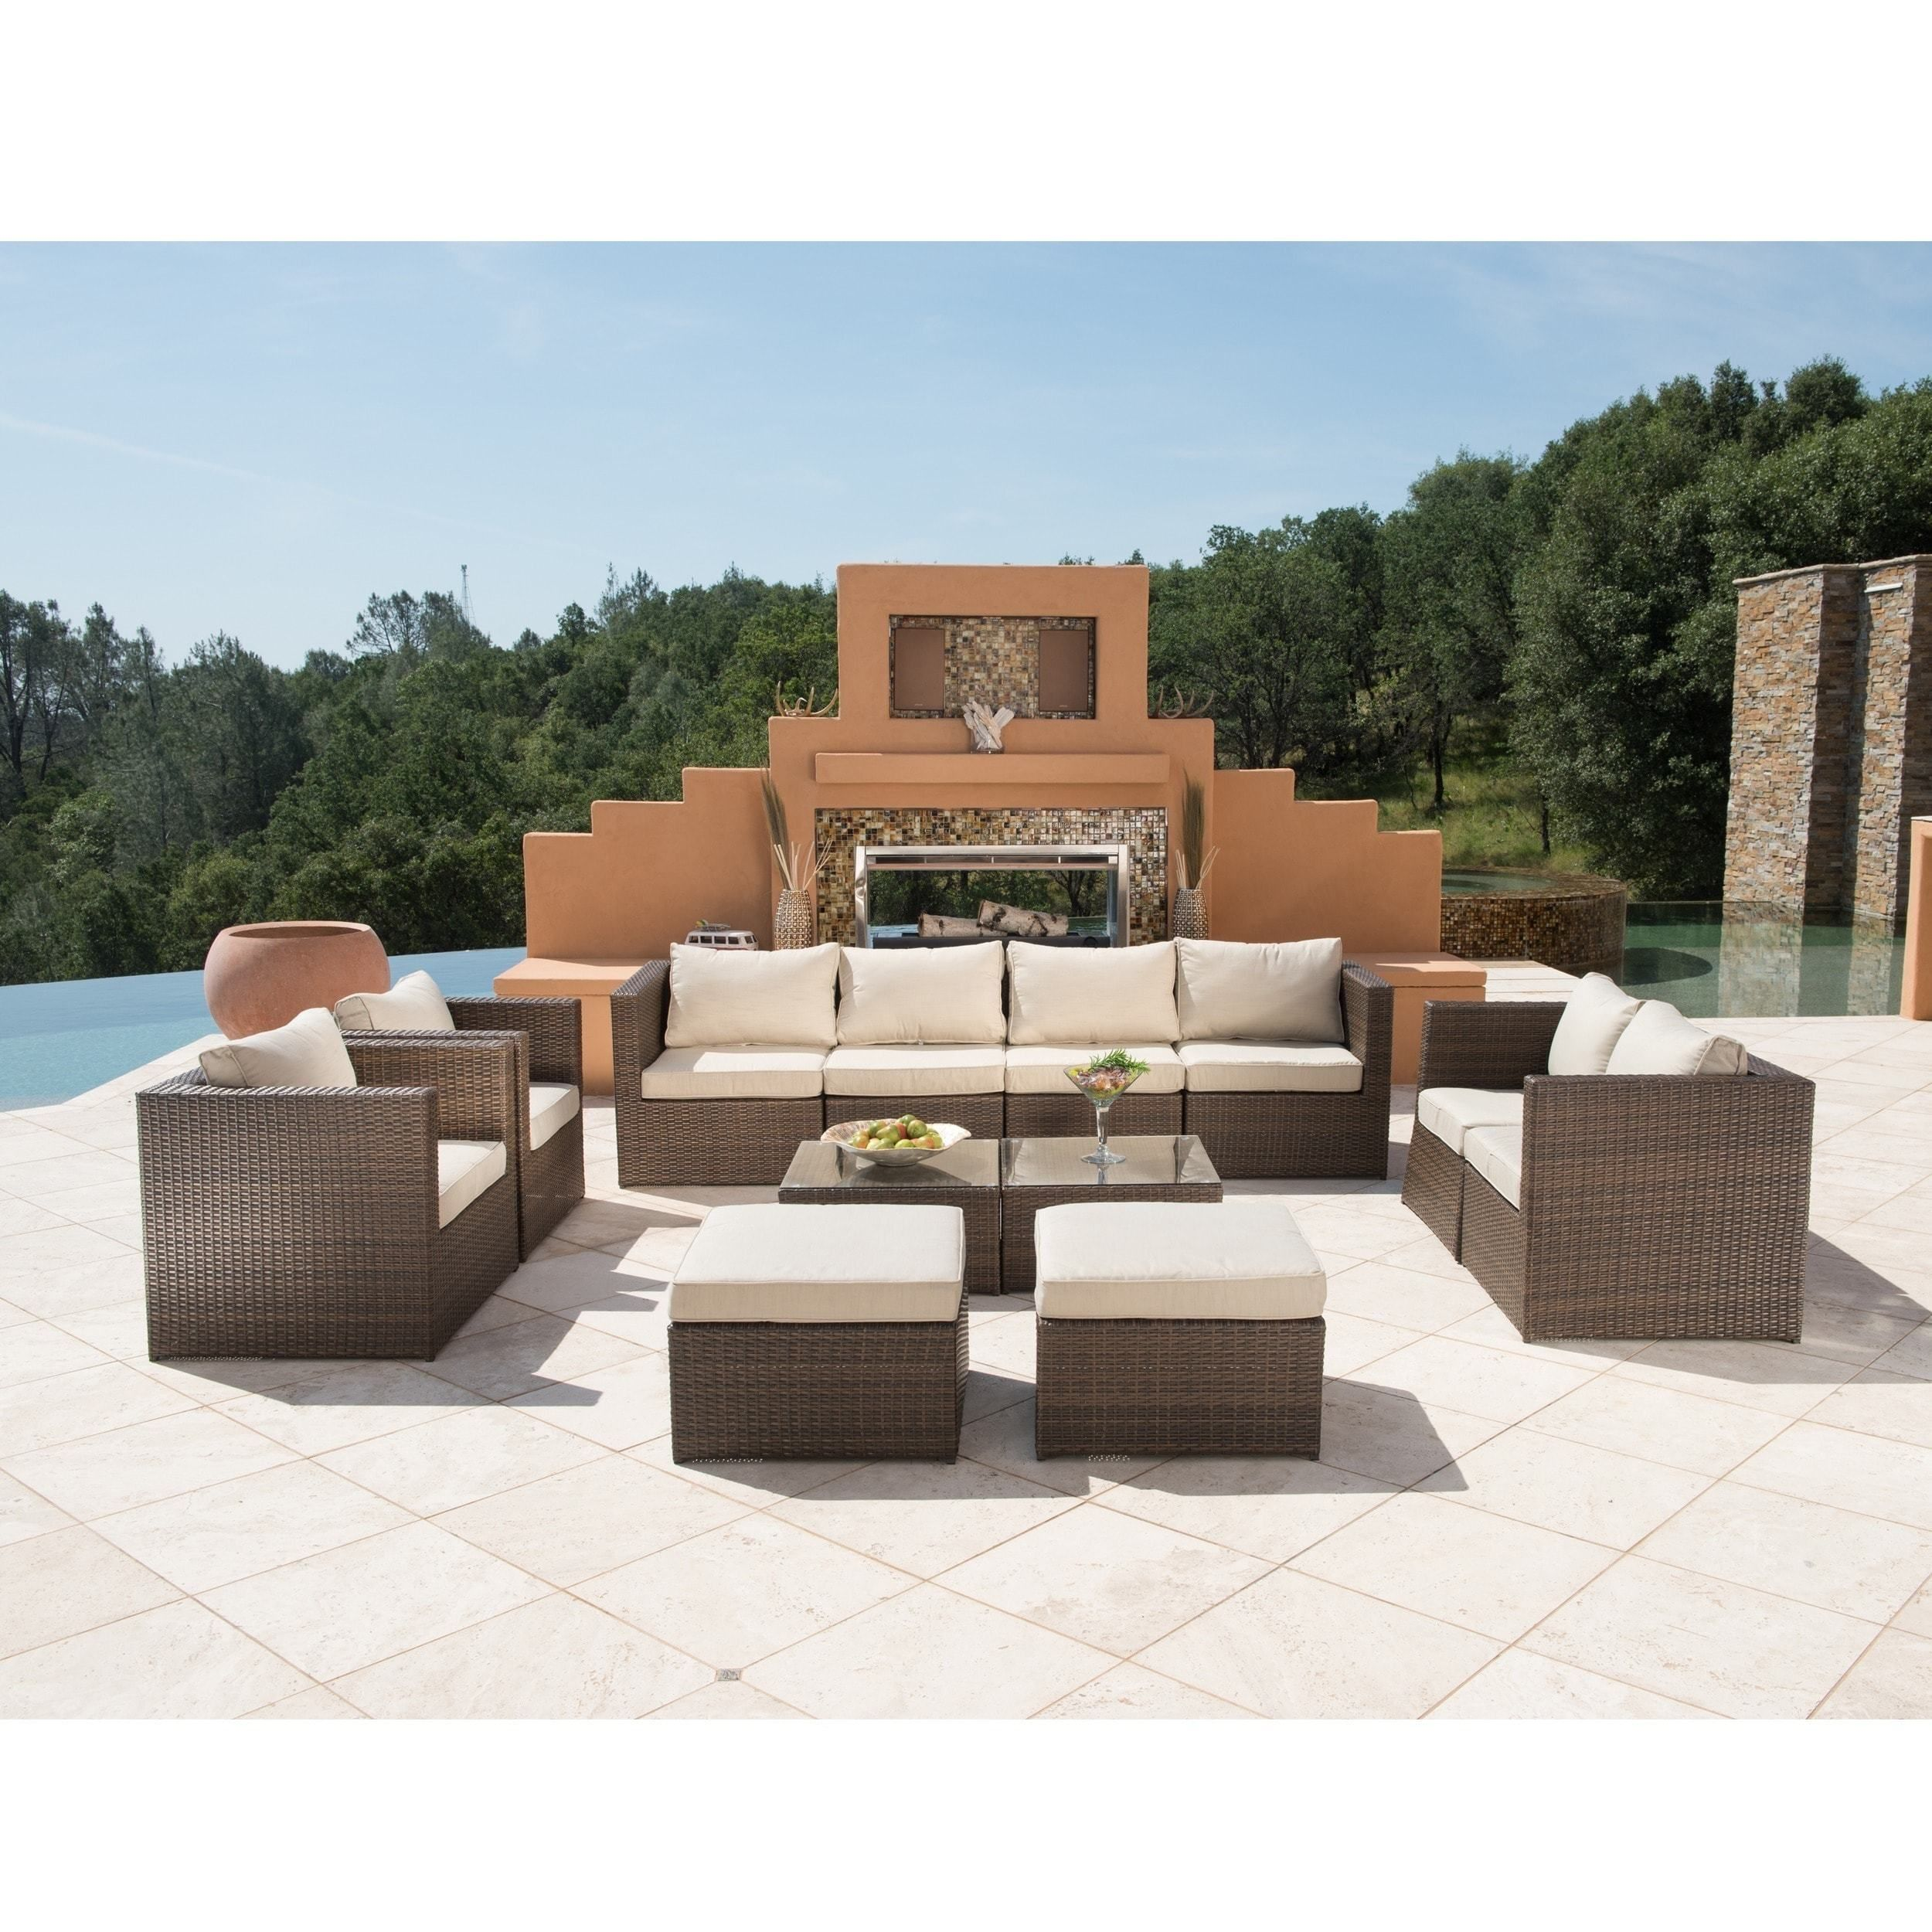 Trey 12 Piece Dark Brown Wicker Patio Furniture Set With Gl Top